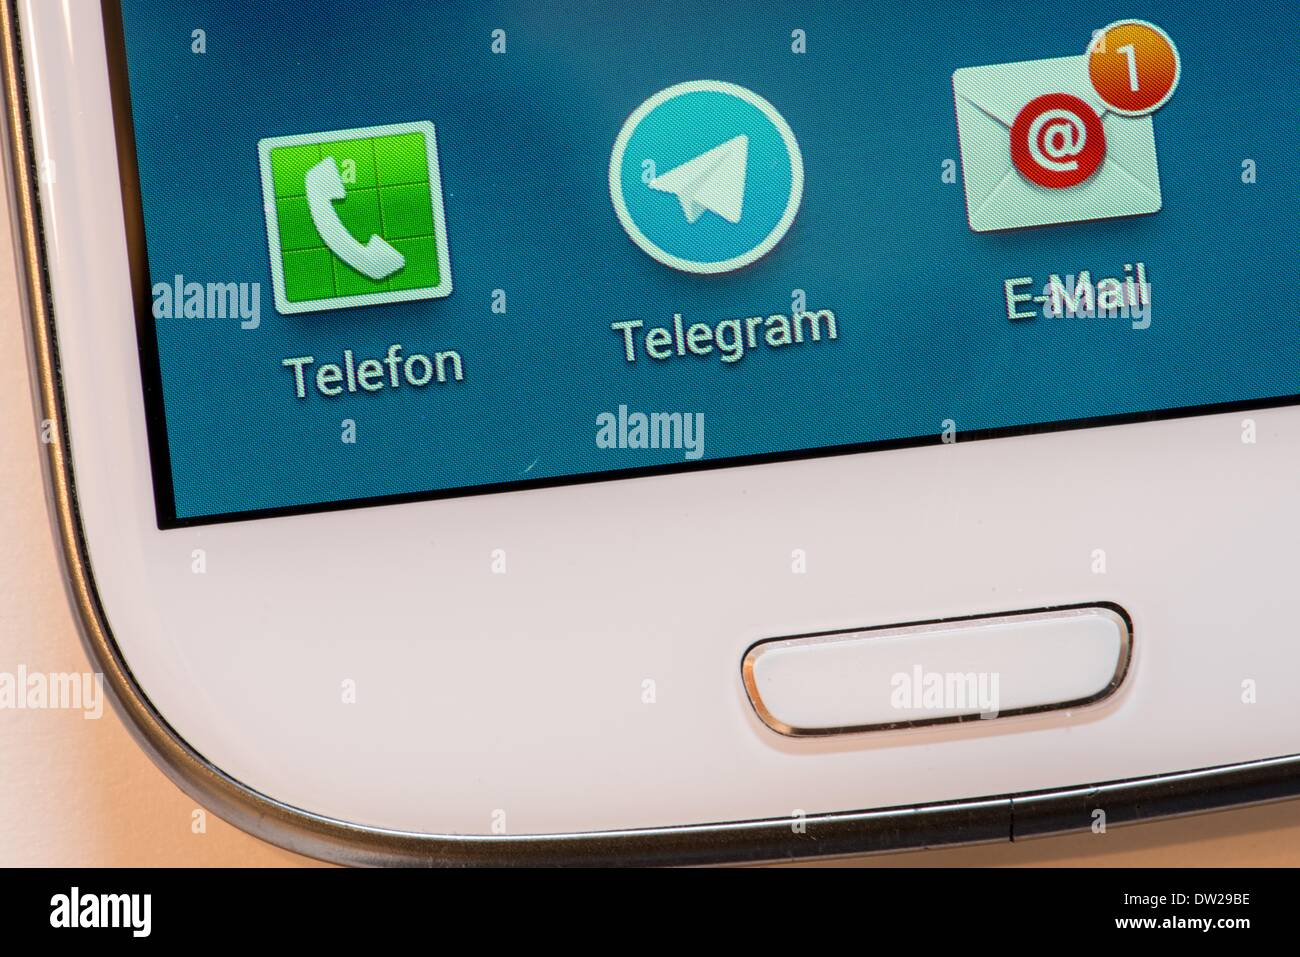 Telegram Germany Stock Photos & Telegram Germany Stock Images - Alamy